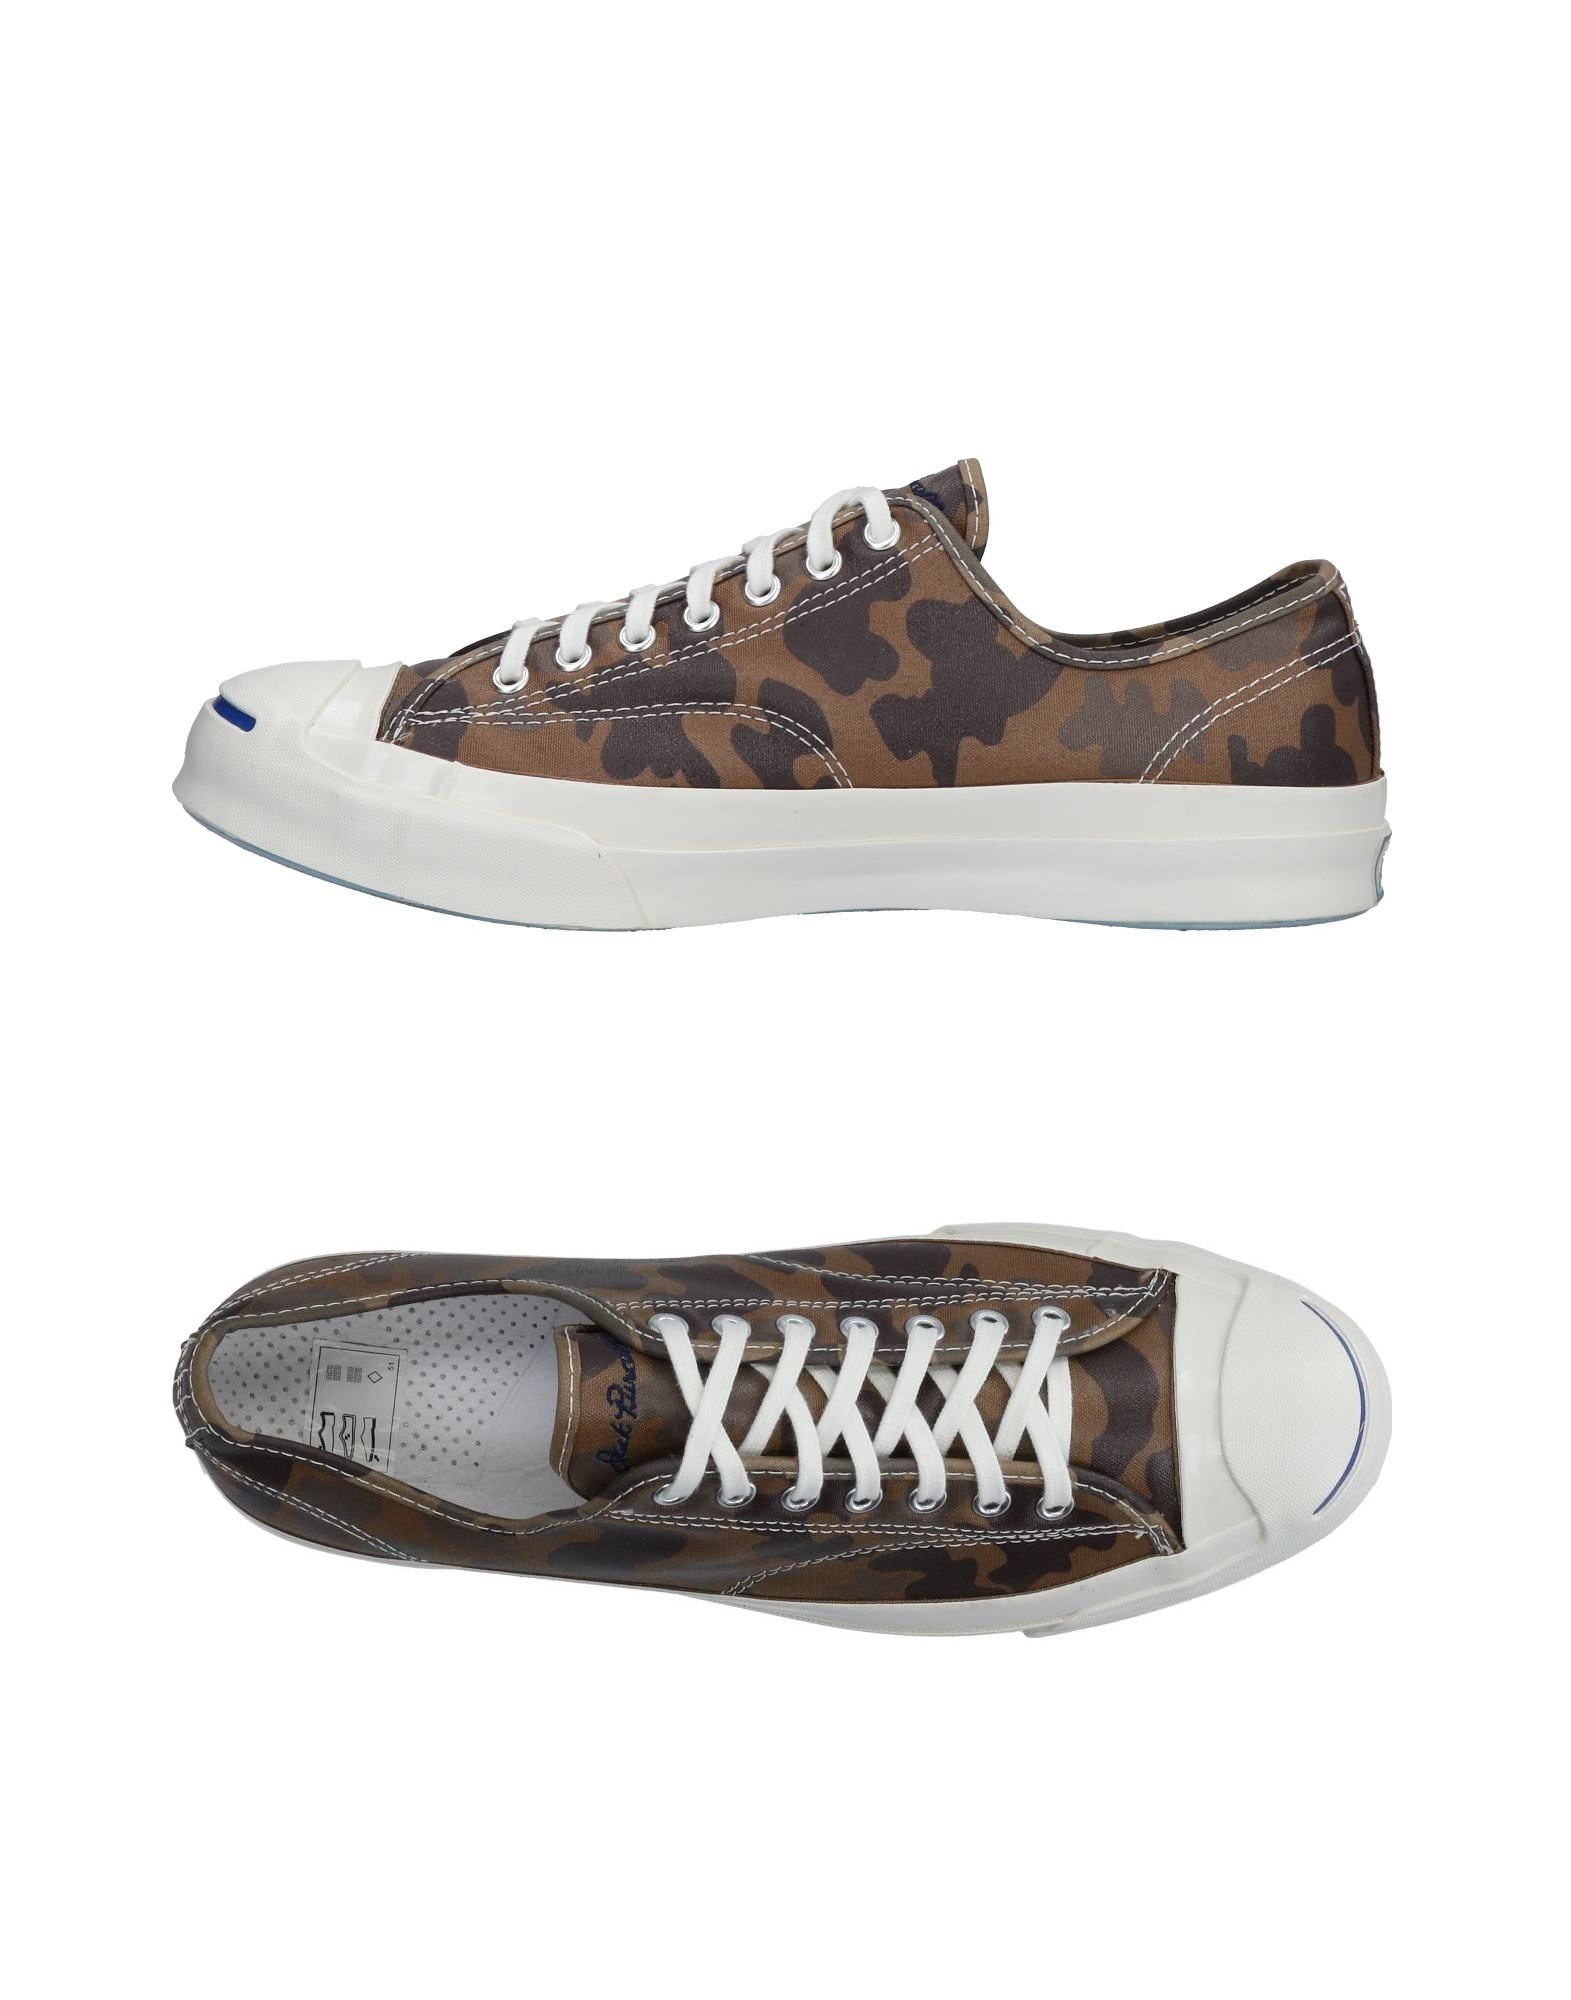 Sneakers Converse Jack Purcell Uomo 11469302HE - 11469302HE Uomo 574530